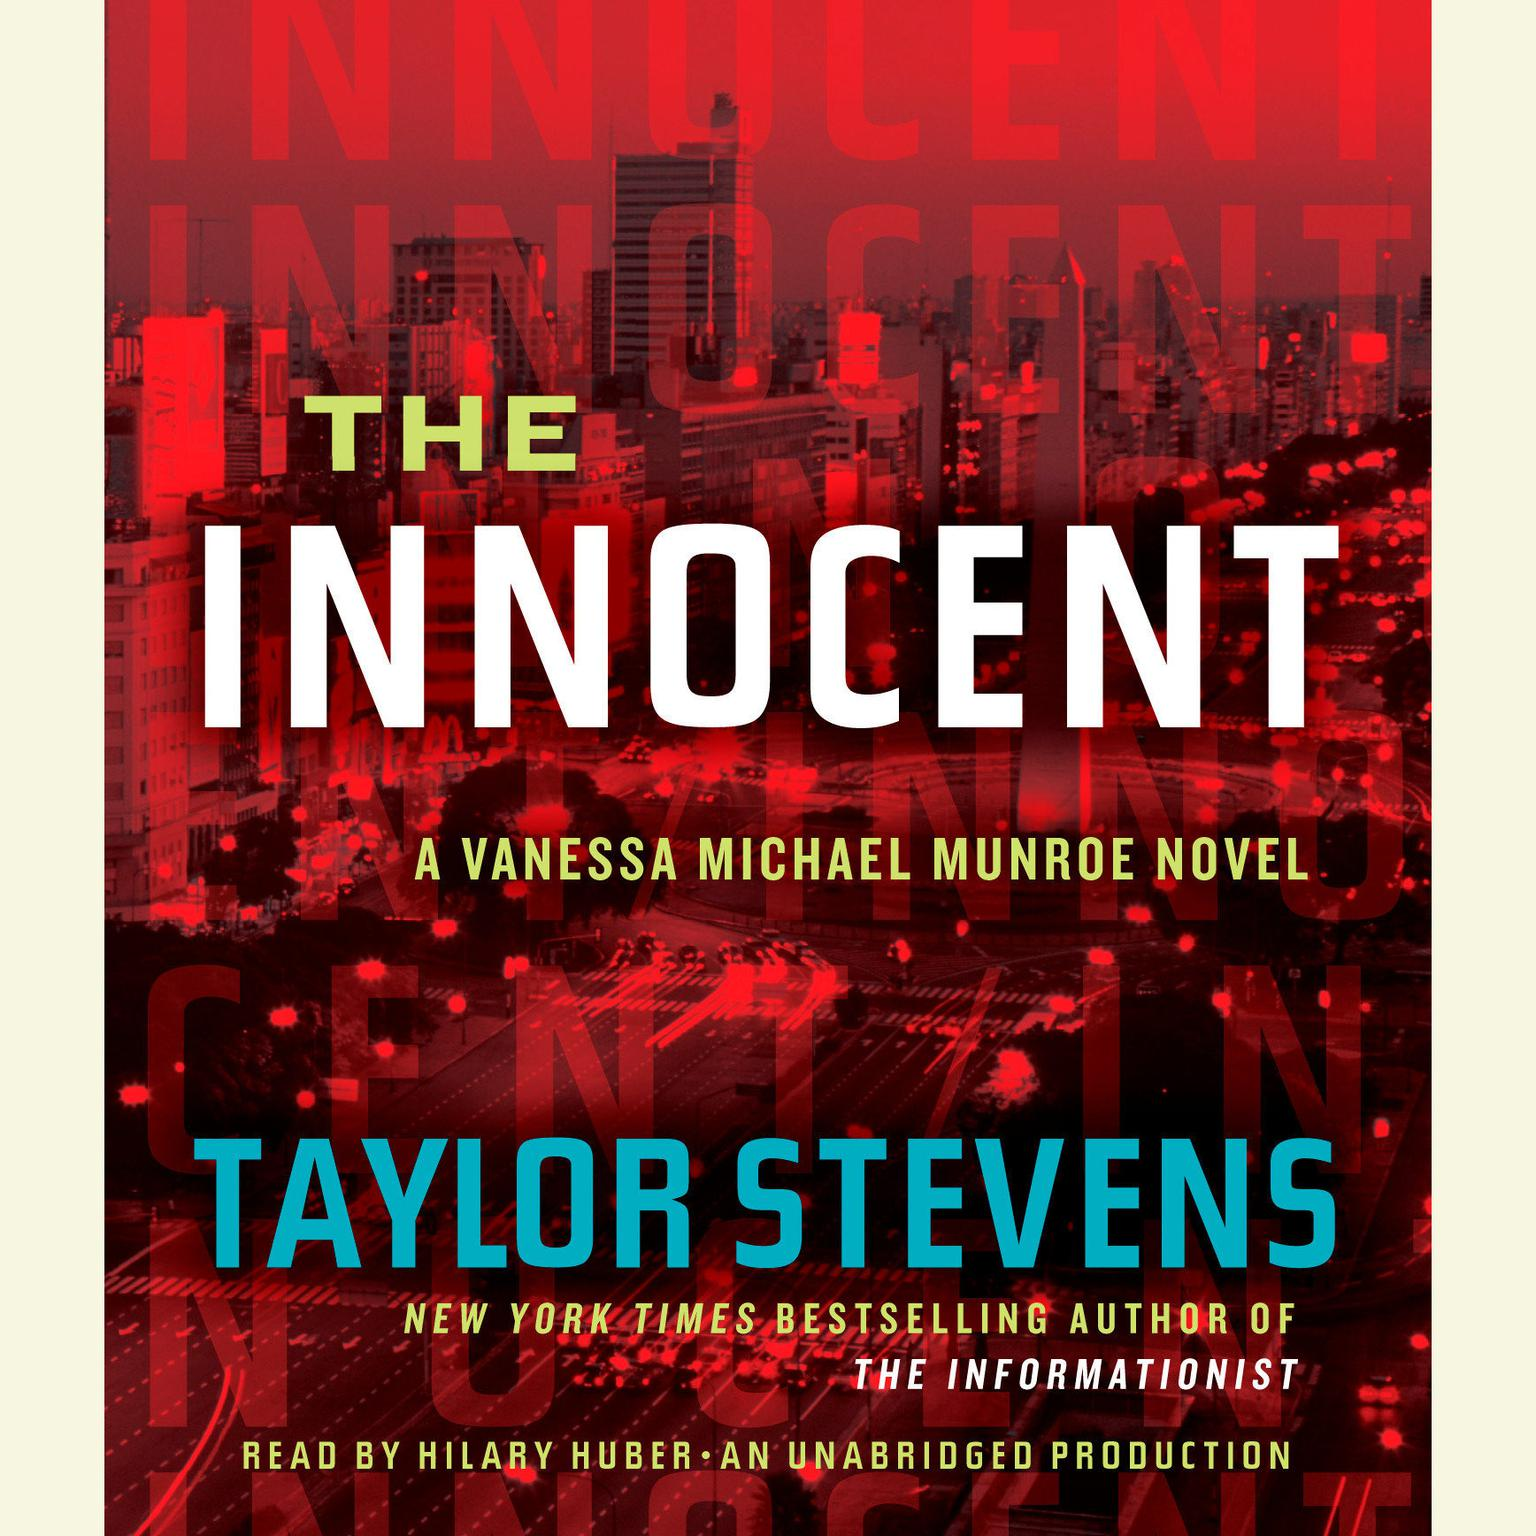 Printable The Innocent: A Vanessa Michael Munroe Novel Audiobook Cover Art